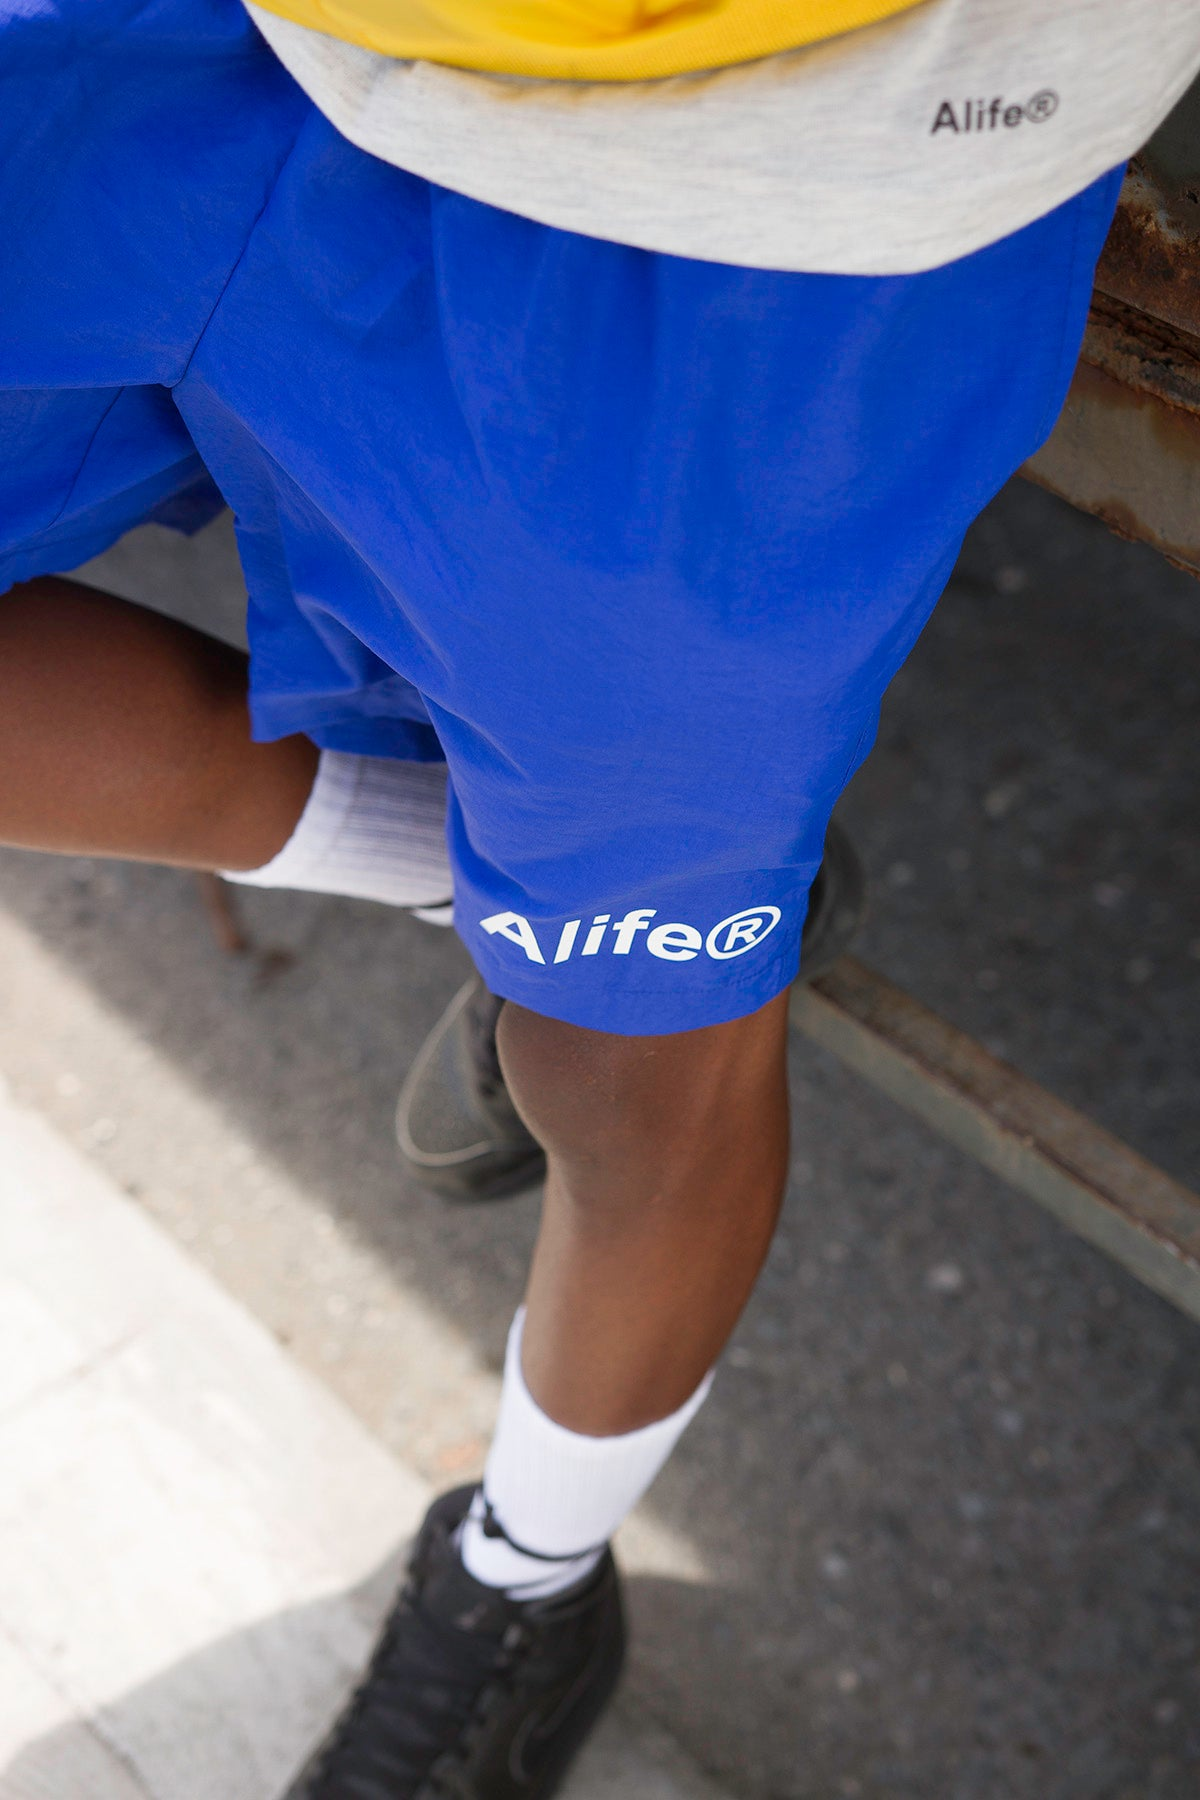 Alife Swim/Run Nylon Short - Blue